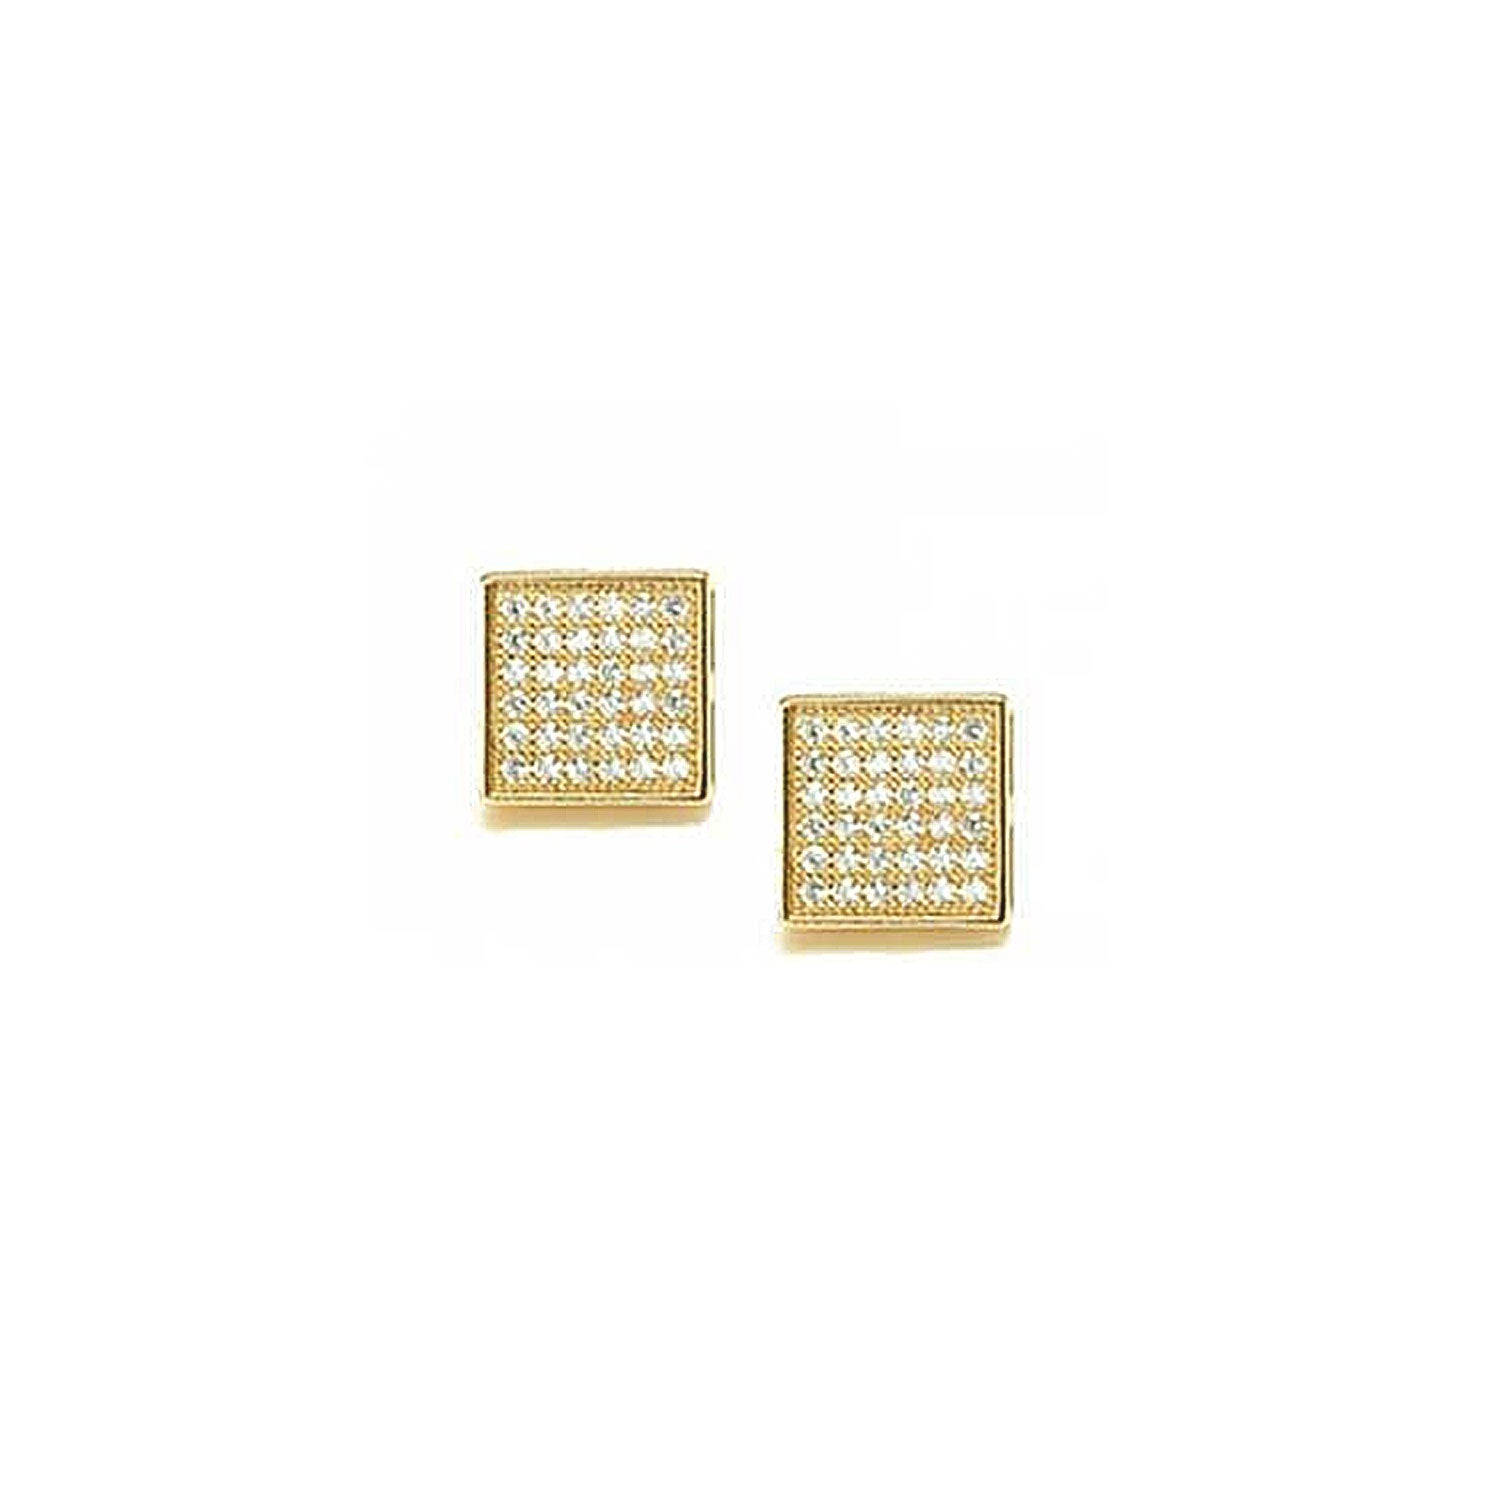 86ed88c94 Shop Bling Jewelry Micro Pave Hexagon Square Stud earrings Gold Plated 5mm  - On Sale - Free Shipping On Orders Over $45 - Overstock.com - 18037545